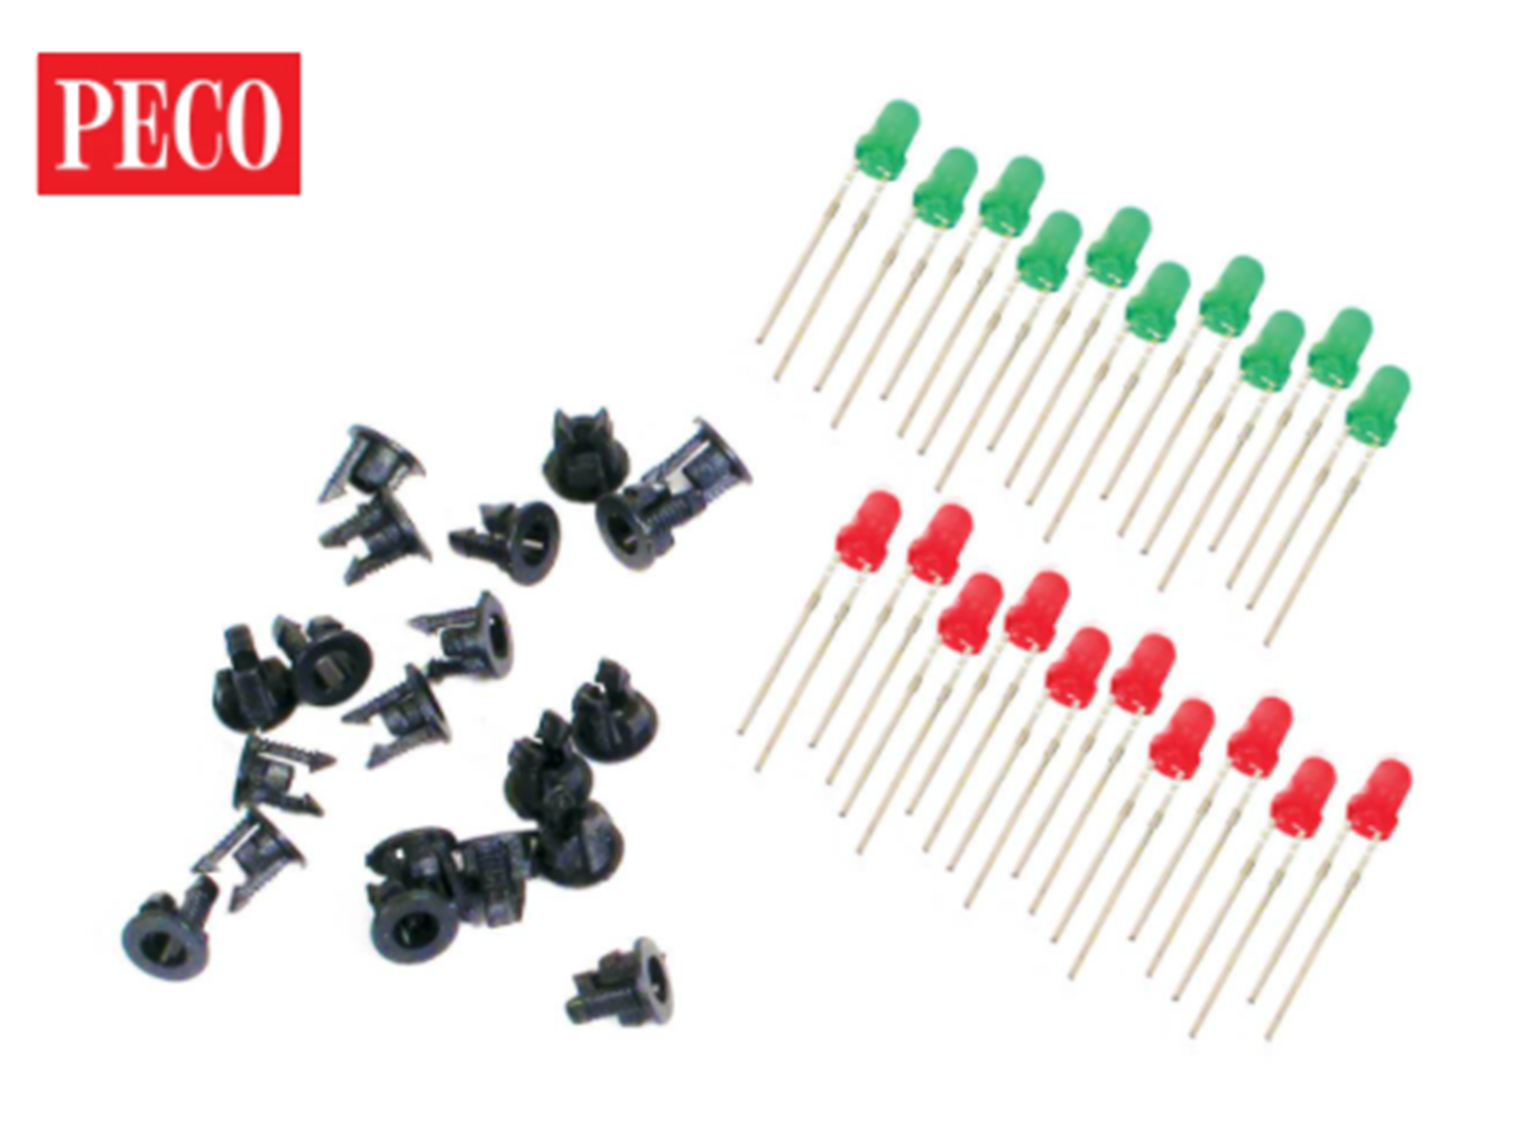 LED's (3mm, 10 Red & 10 Green)